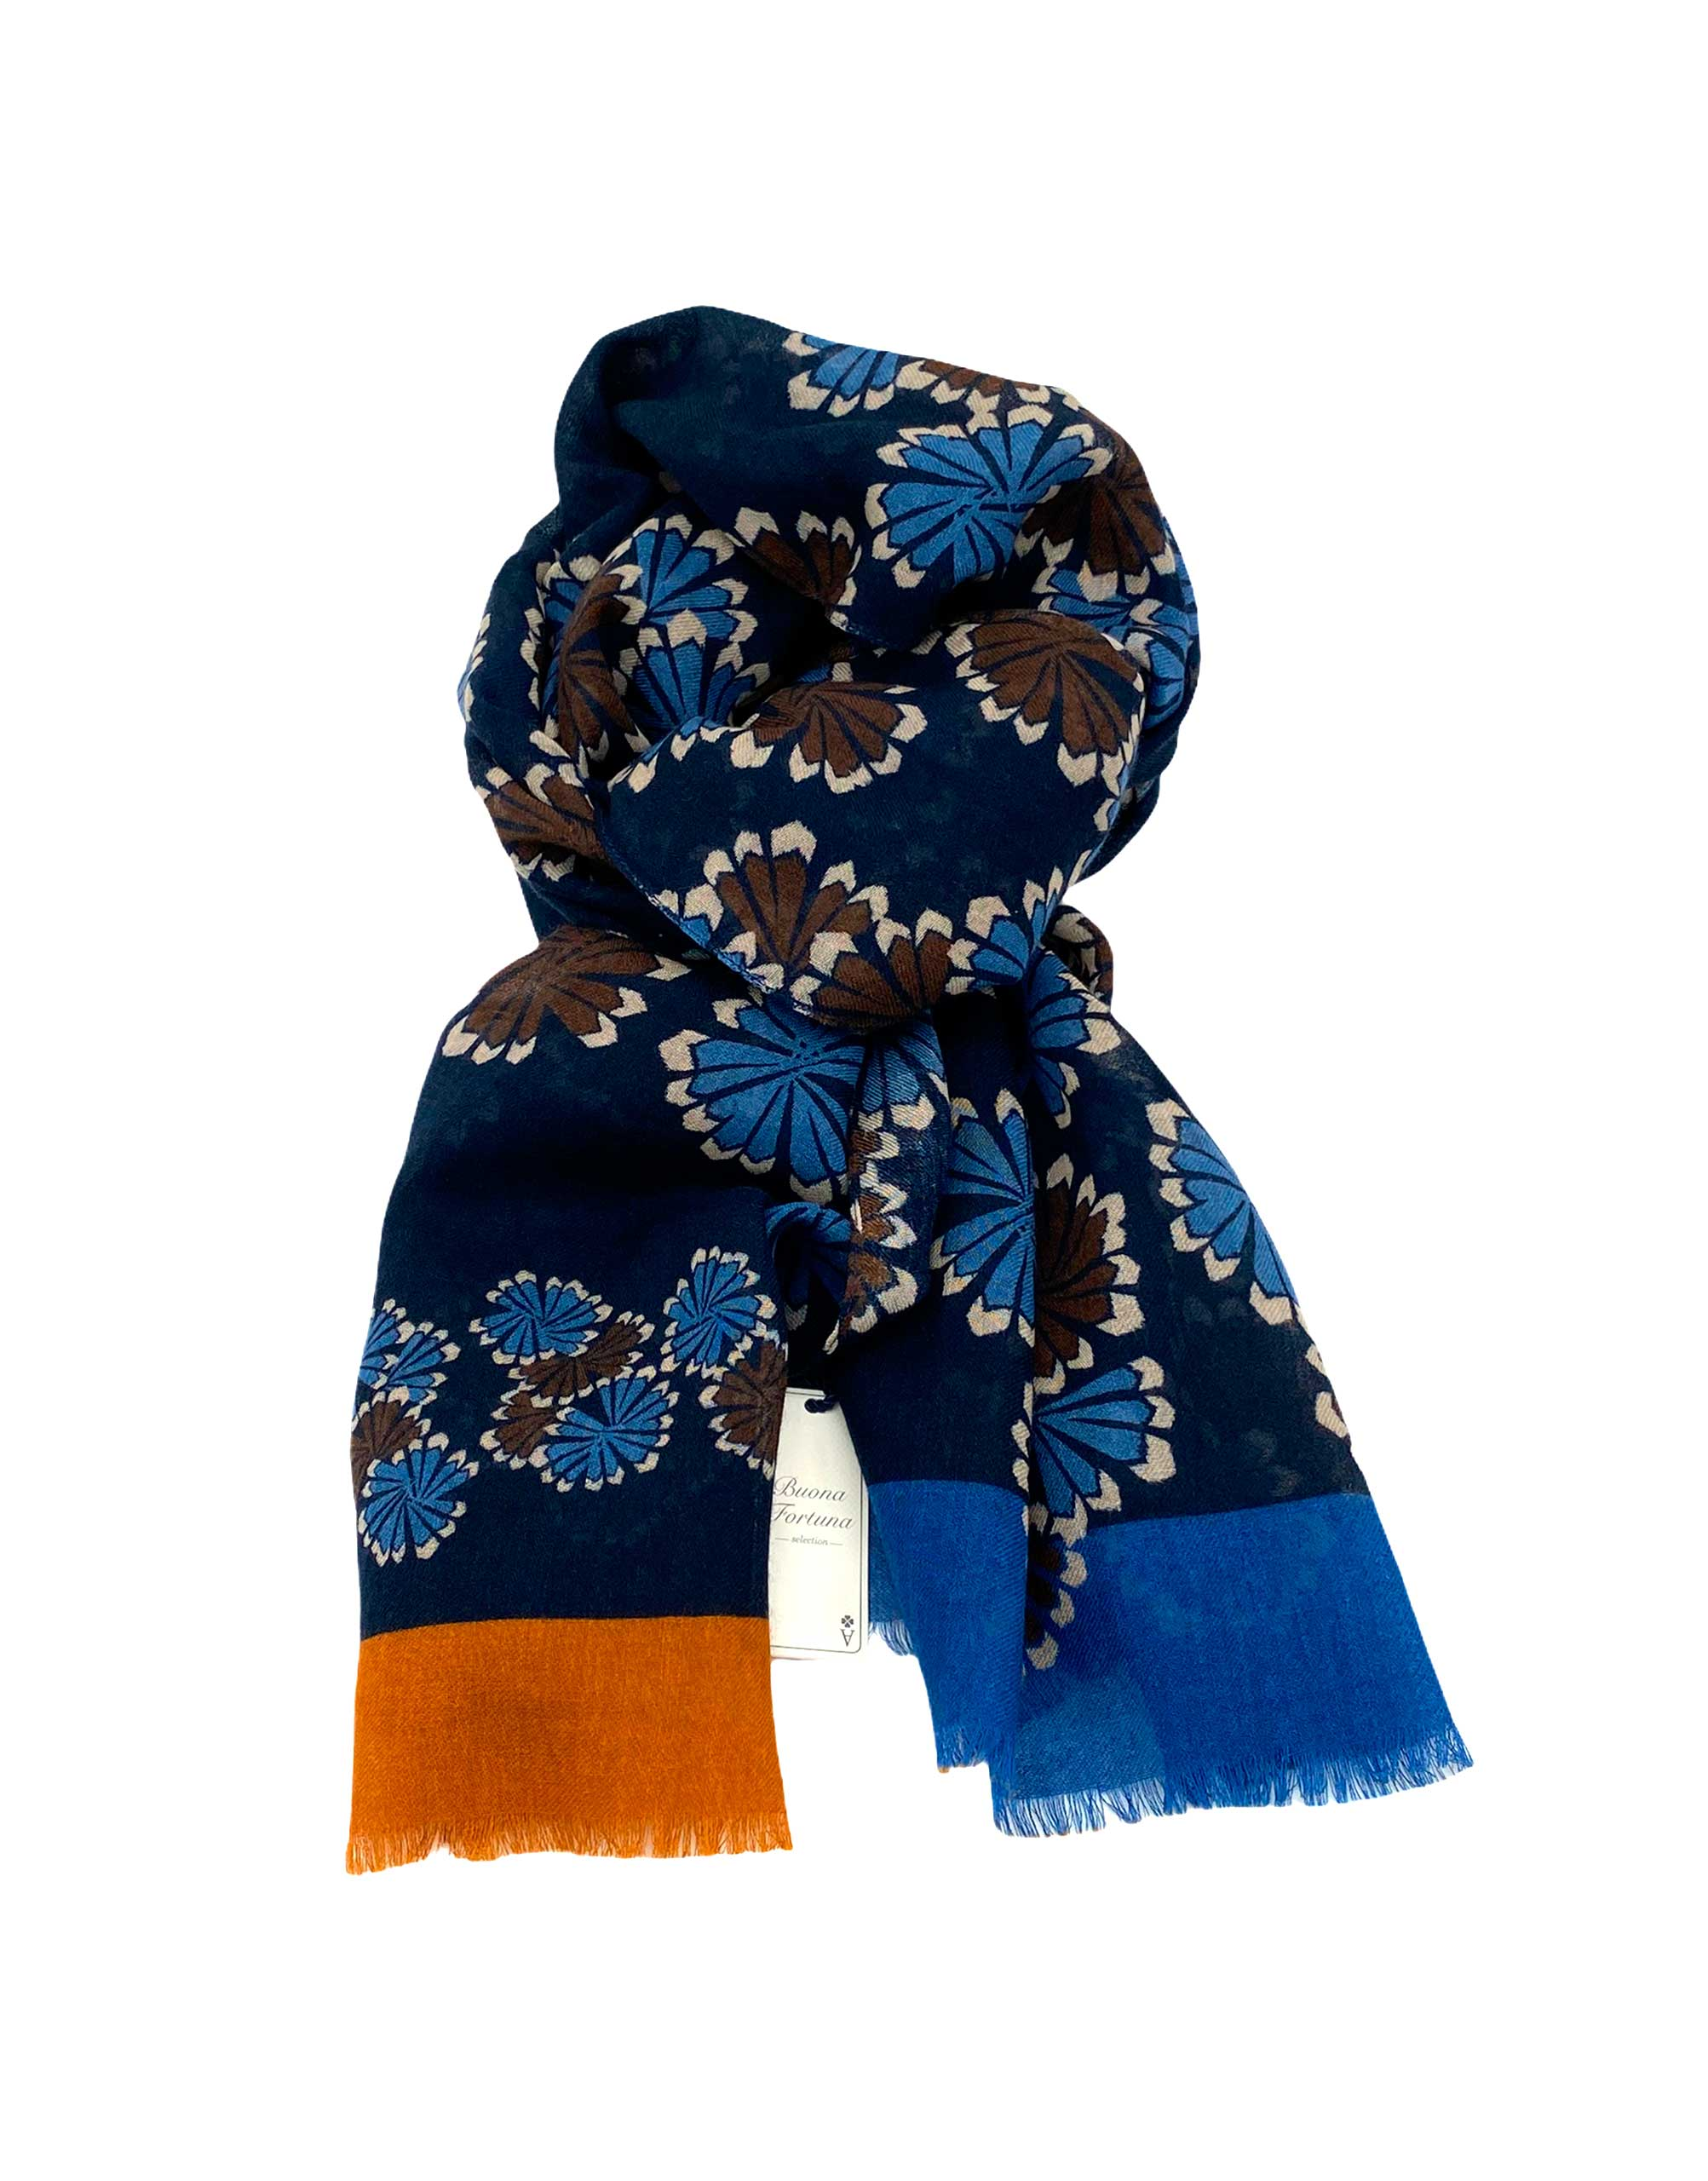 pashmina buona fortuna exclusivas comprar online moda italiana foulards shop marrones azules beiges